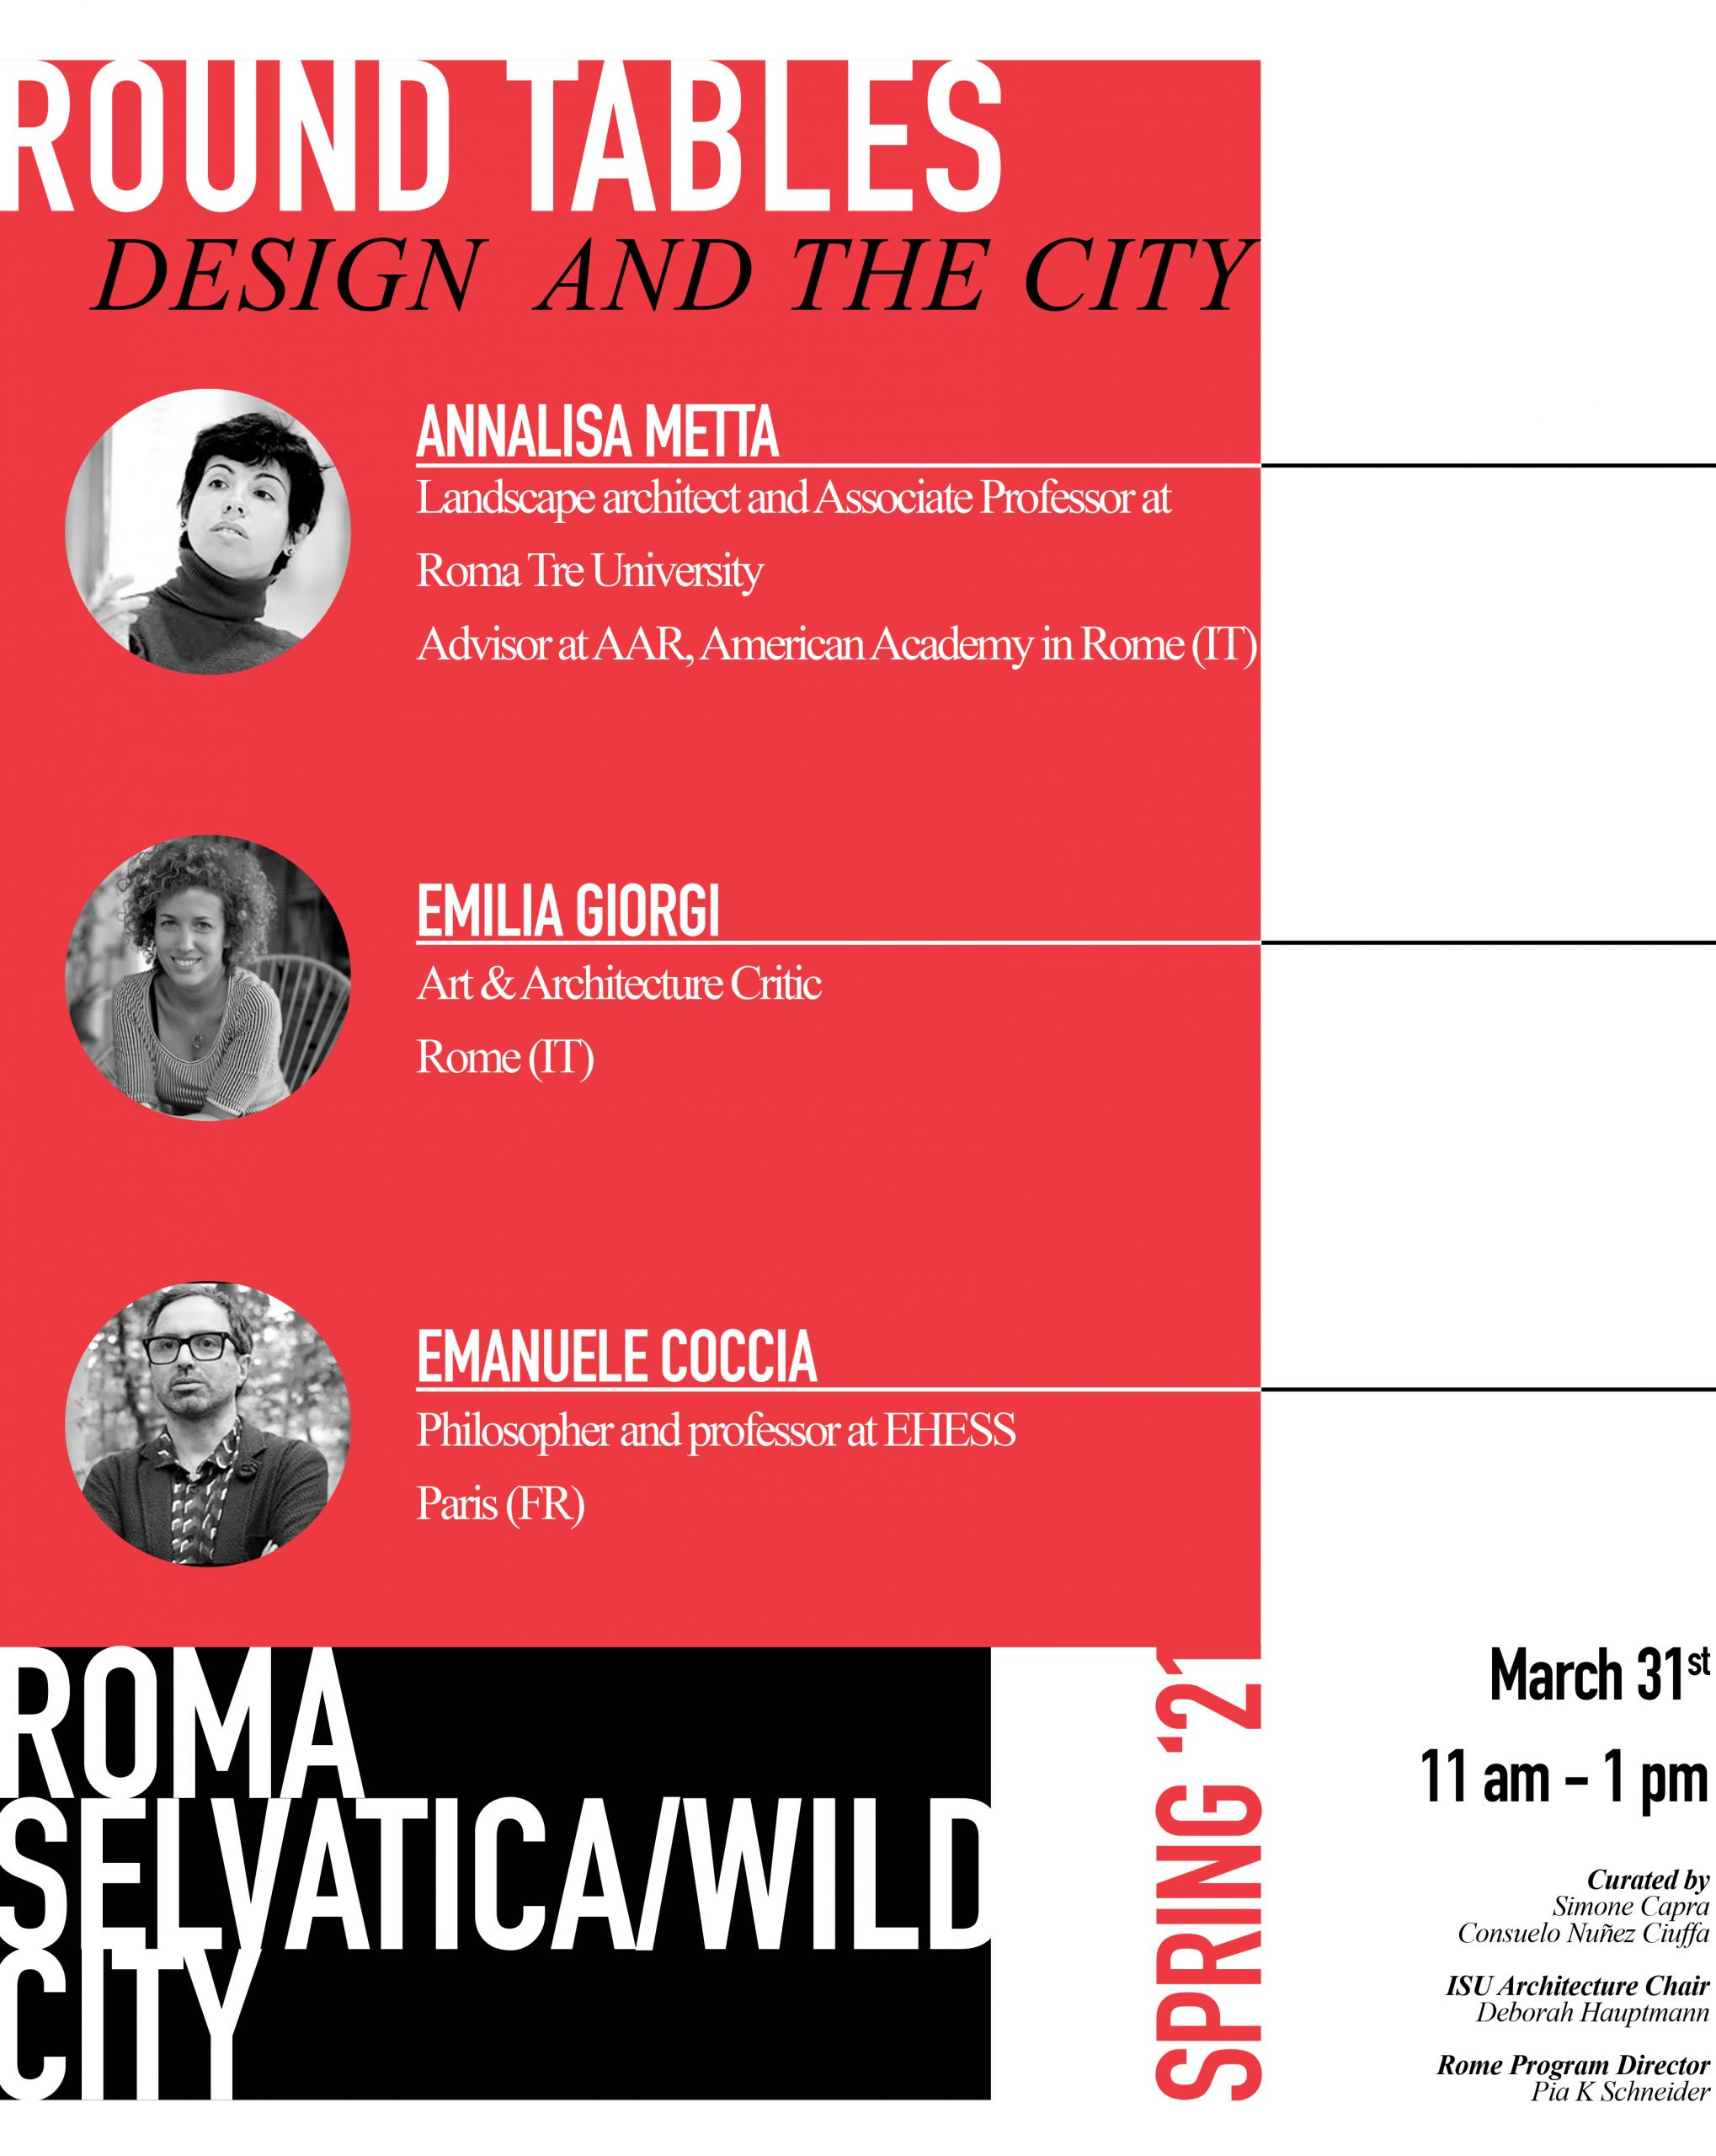 Design and the City Round Tables Session III